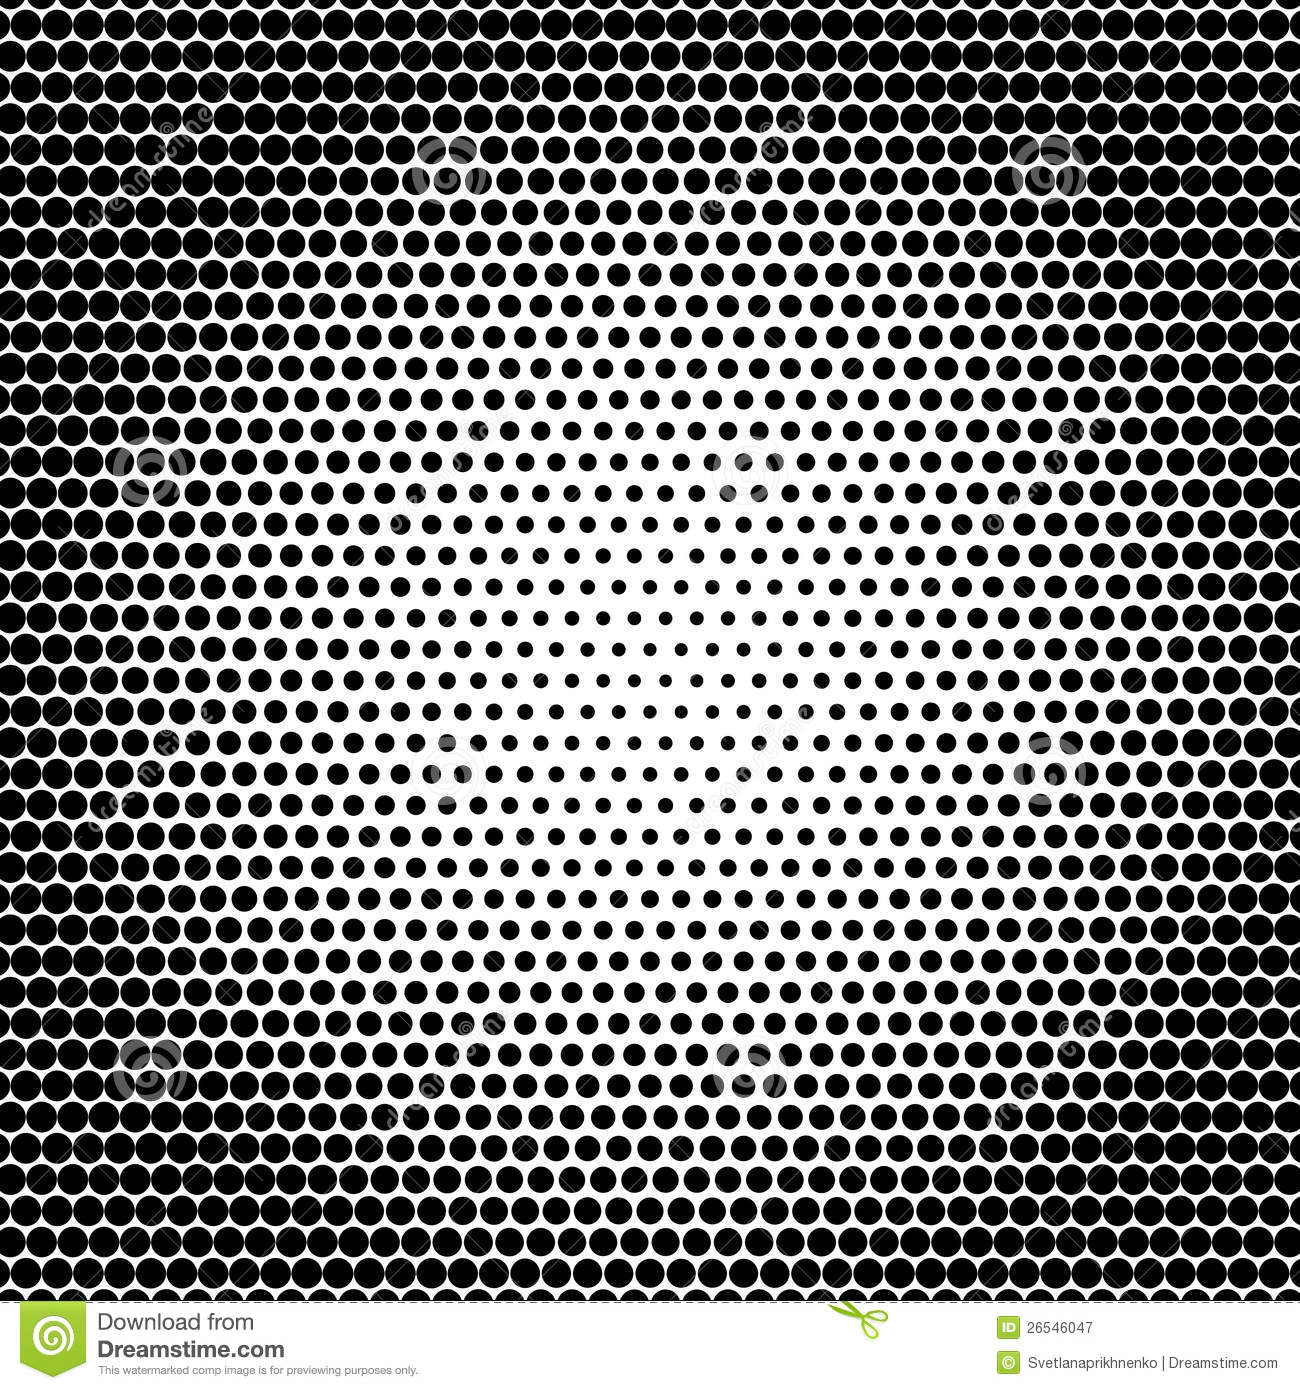 dots pattern stock vector  image of dots  design  raster